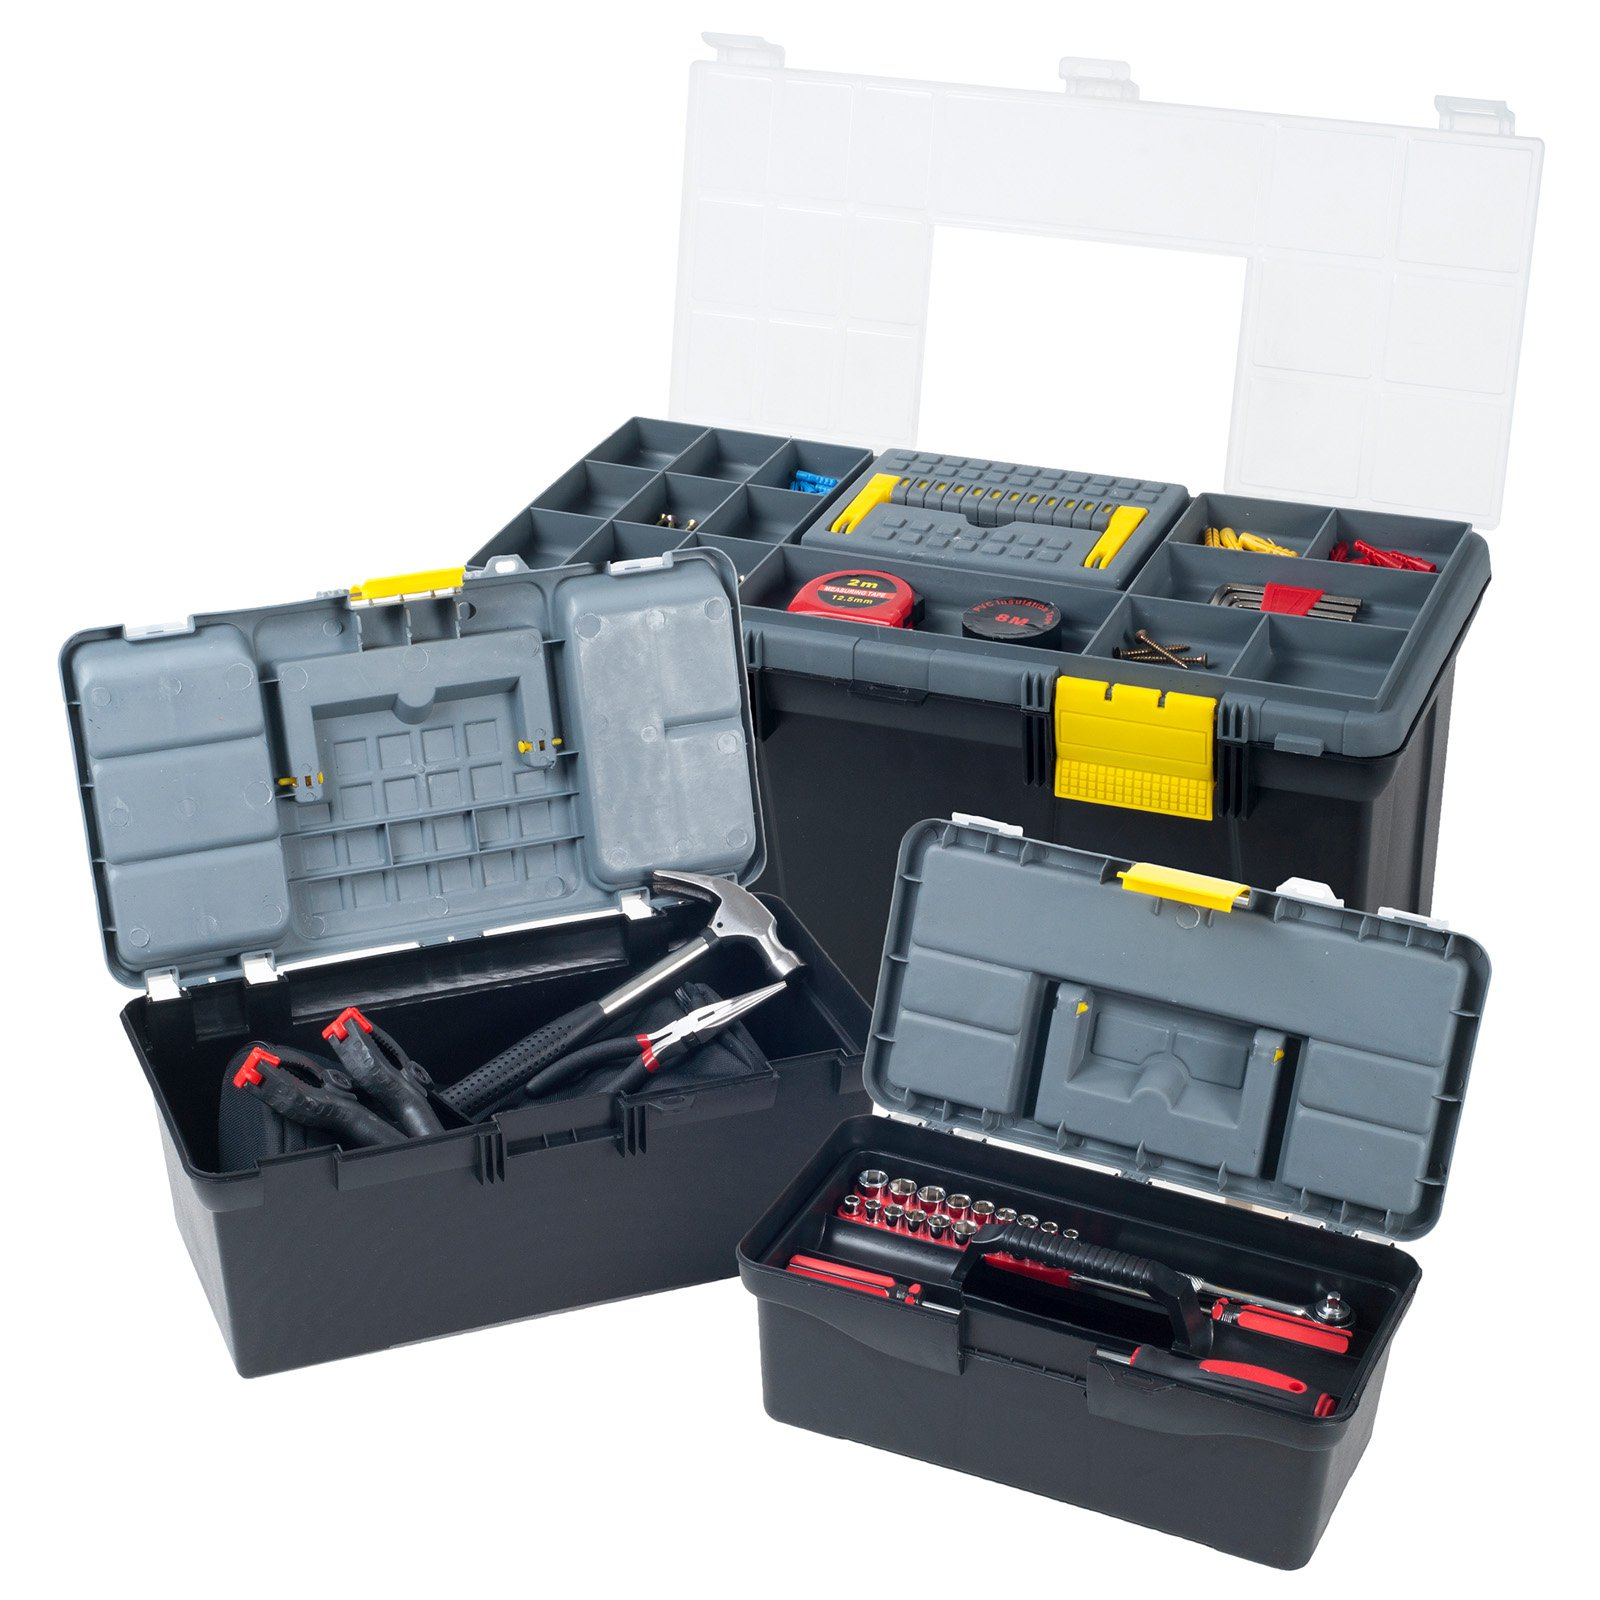 Stalwart Parts & Crafts 3-in-1 Tool Box Storage Set by Trademark Global LLC